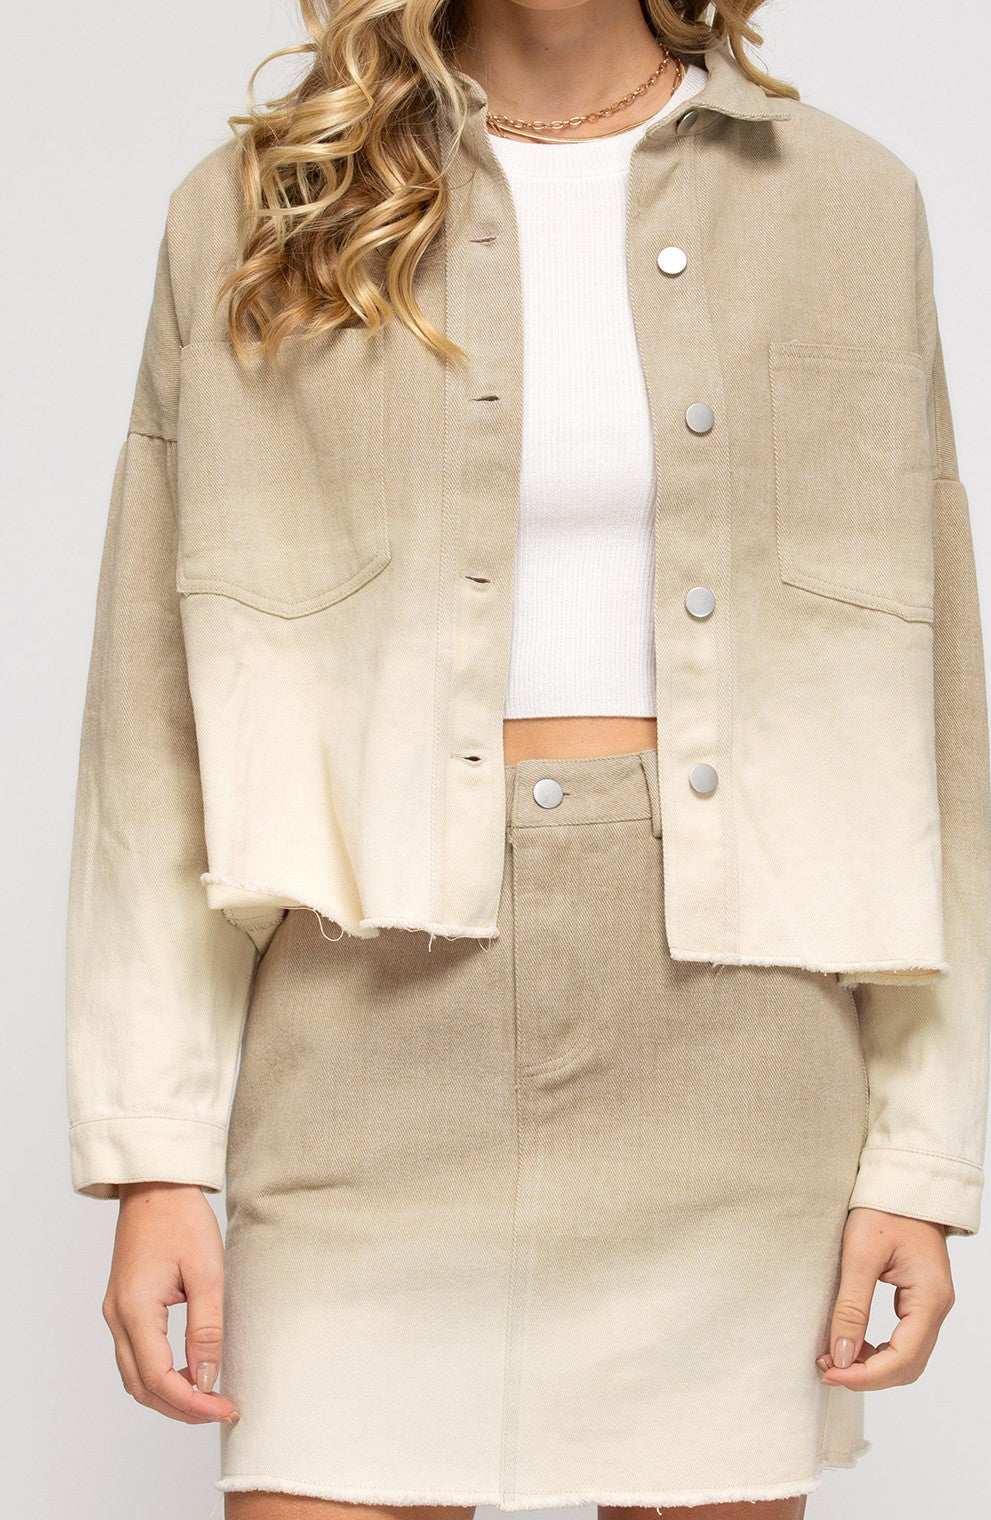 Dip Dyed Ombre Jacket in Taupe